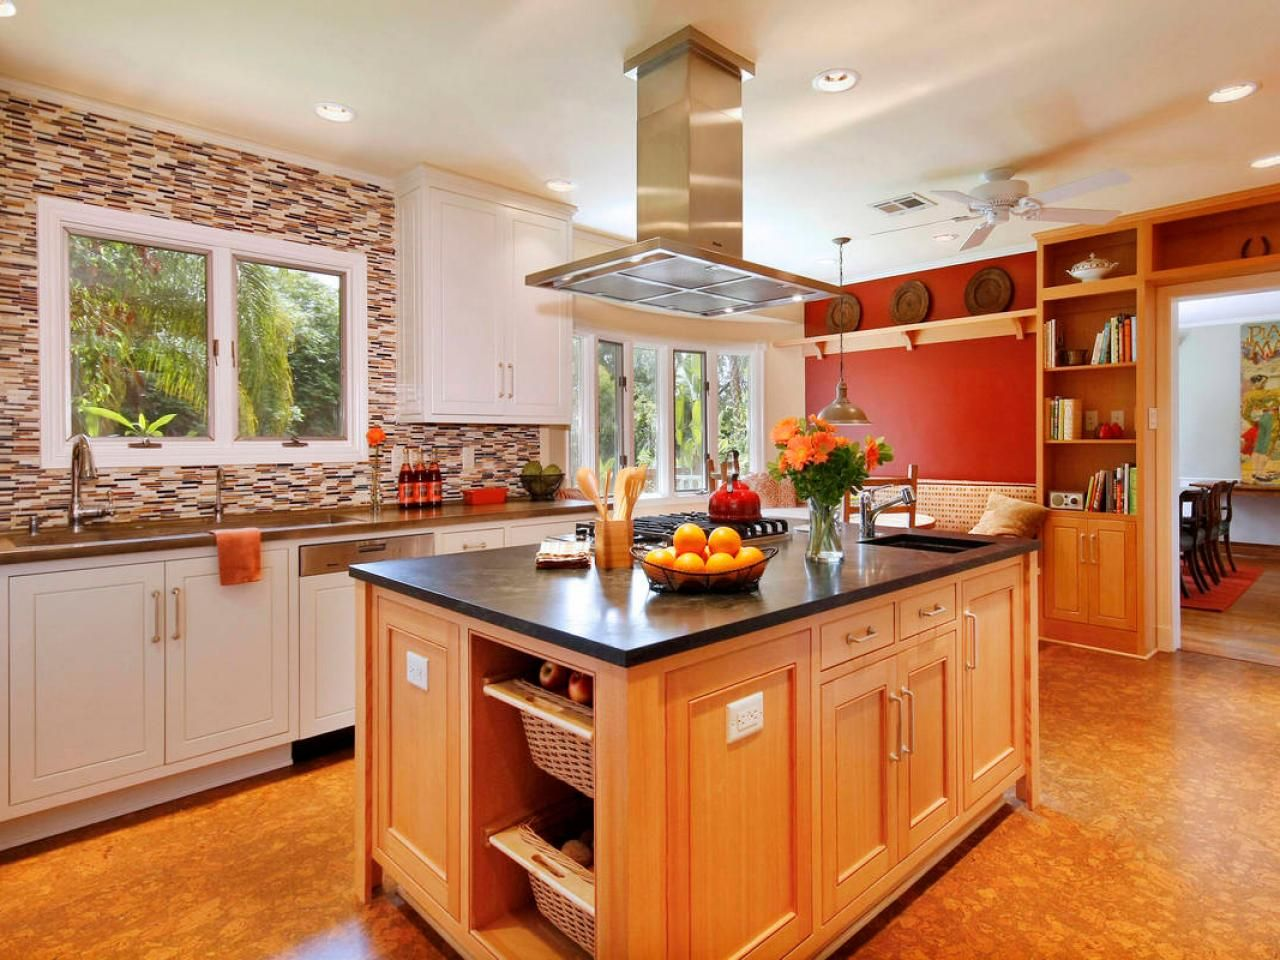 pictures of colorful kitchens  ideas for using color in the kitchen pictures of colorful kitchens  ideas for using color in the      rh   pinterest com